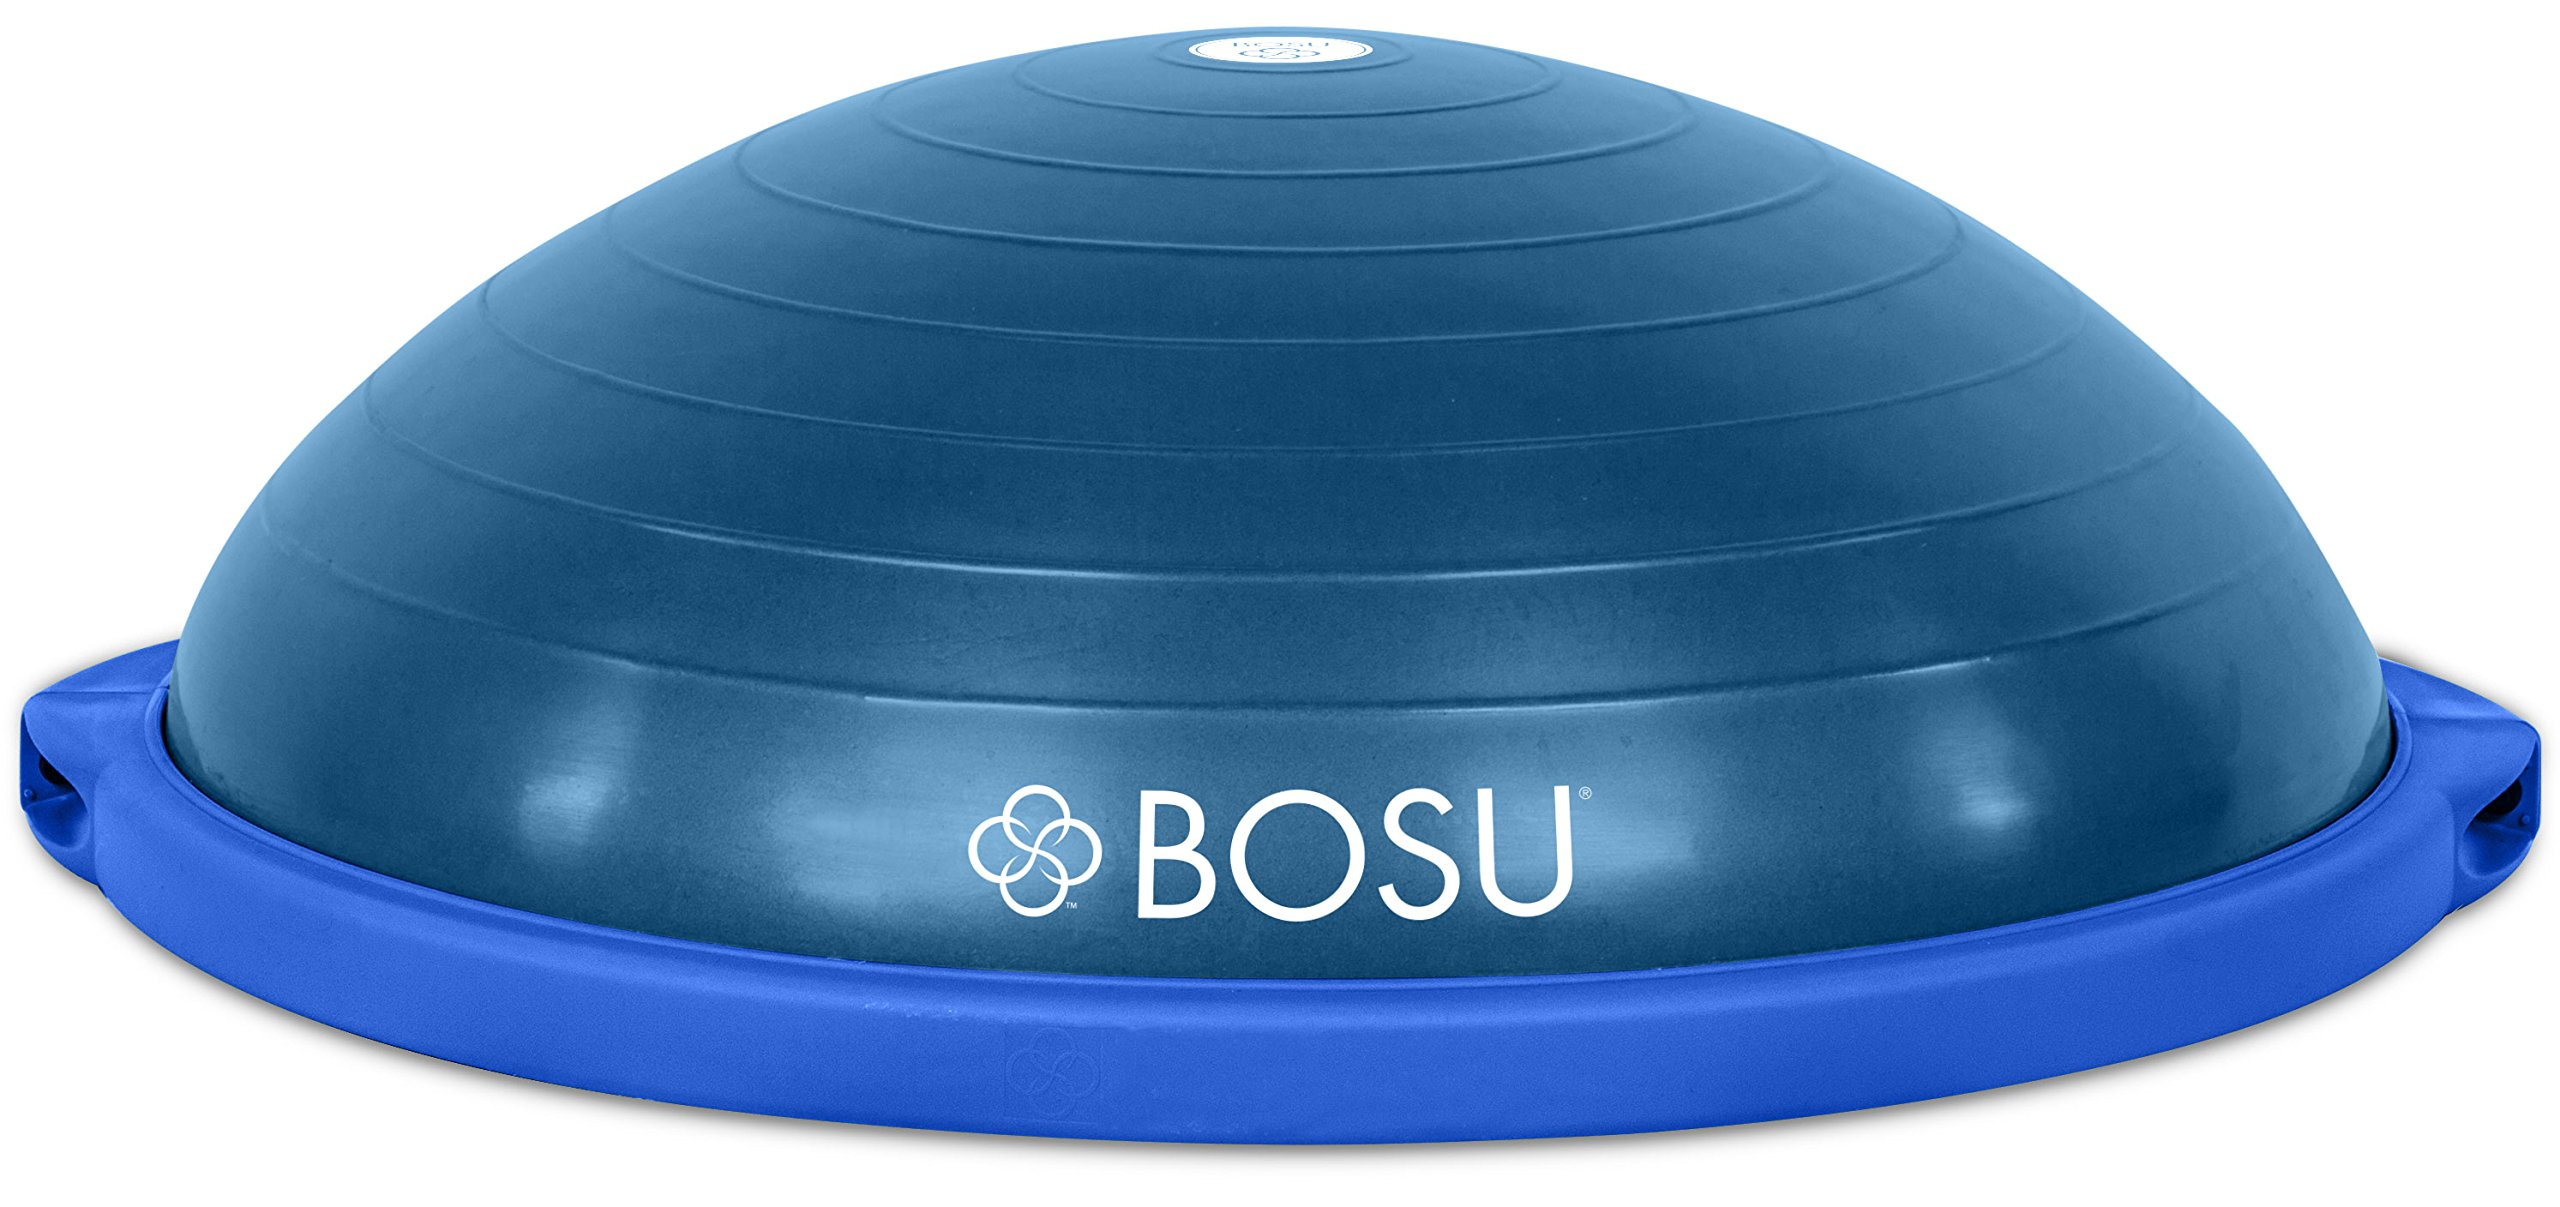 Bosu Balance Trainer, 65cm The Original - Blue/Blue